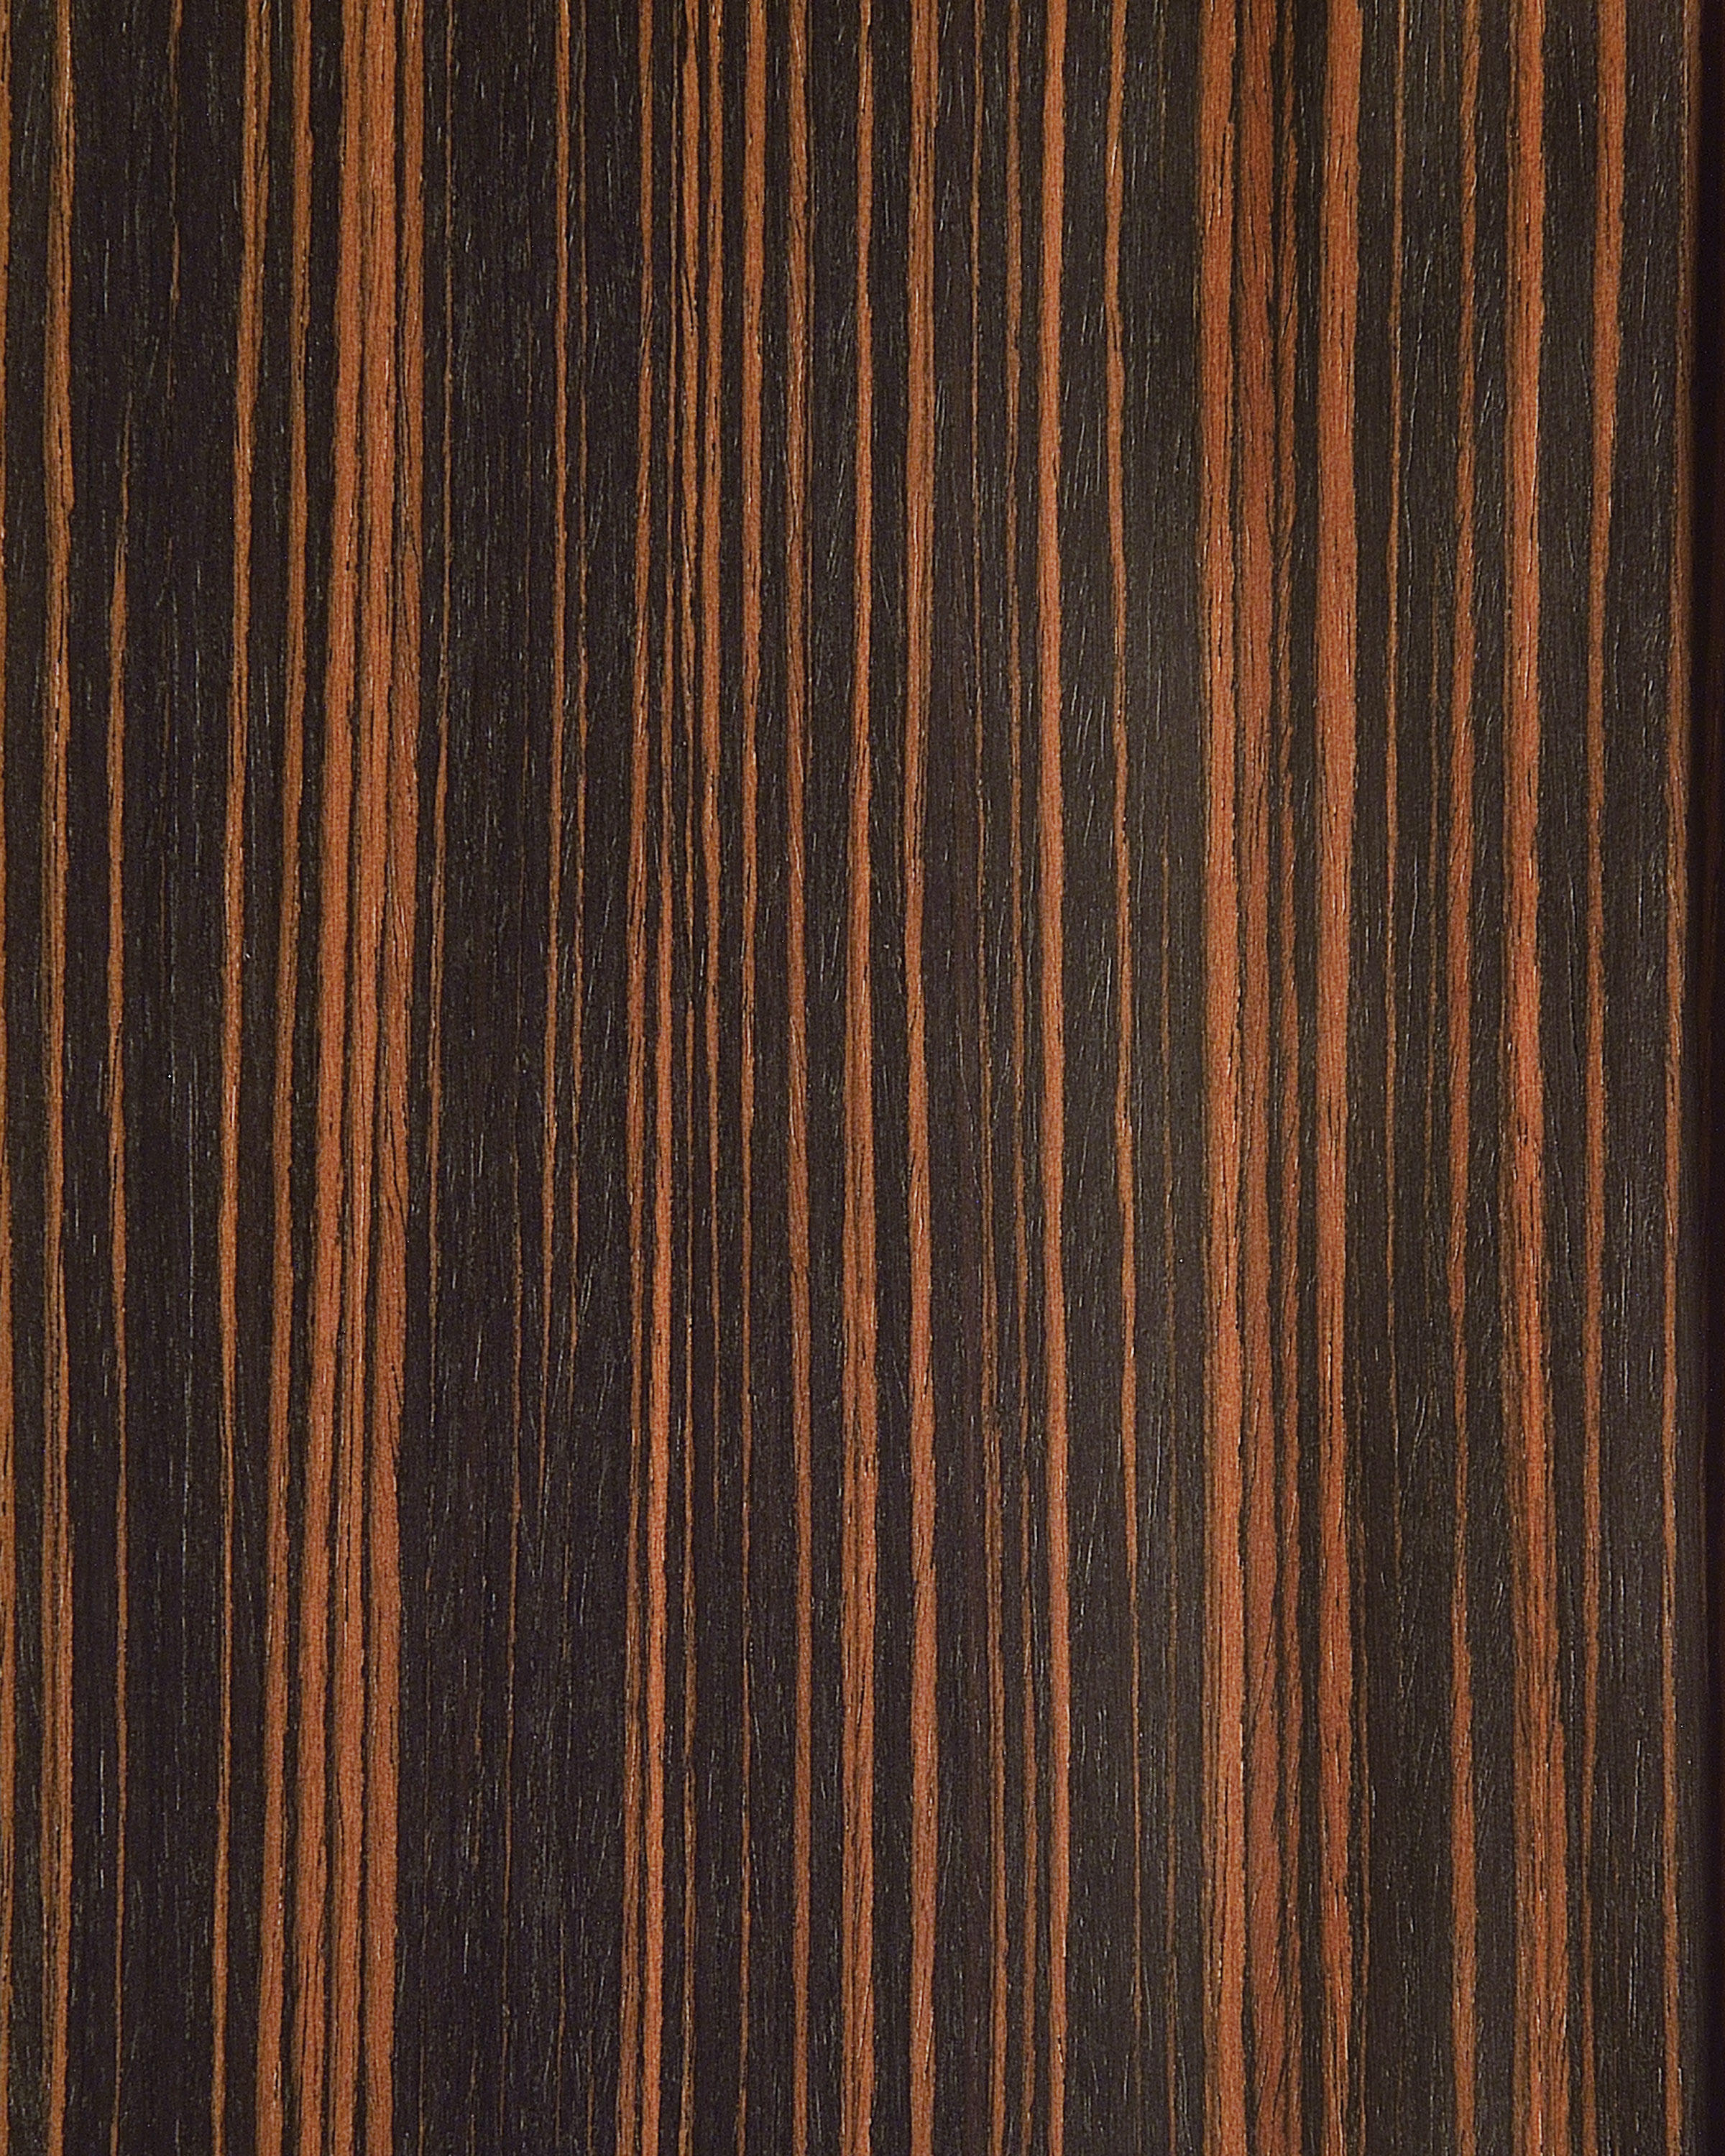 61104 Ebony Straight Grain Wood Veneers From Treefrog